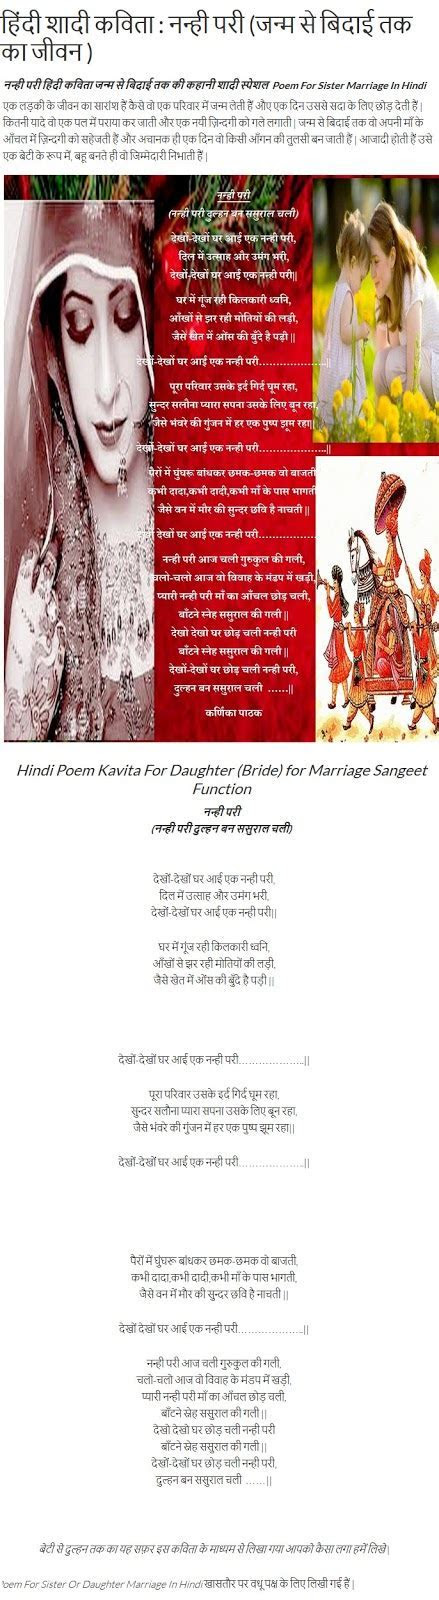 Wedding and Jewellery: Hindi shayari for wedding